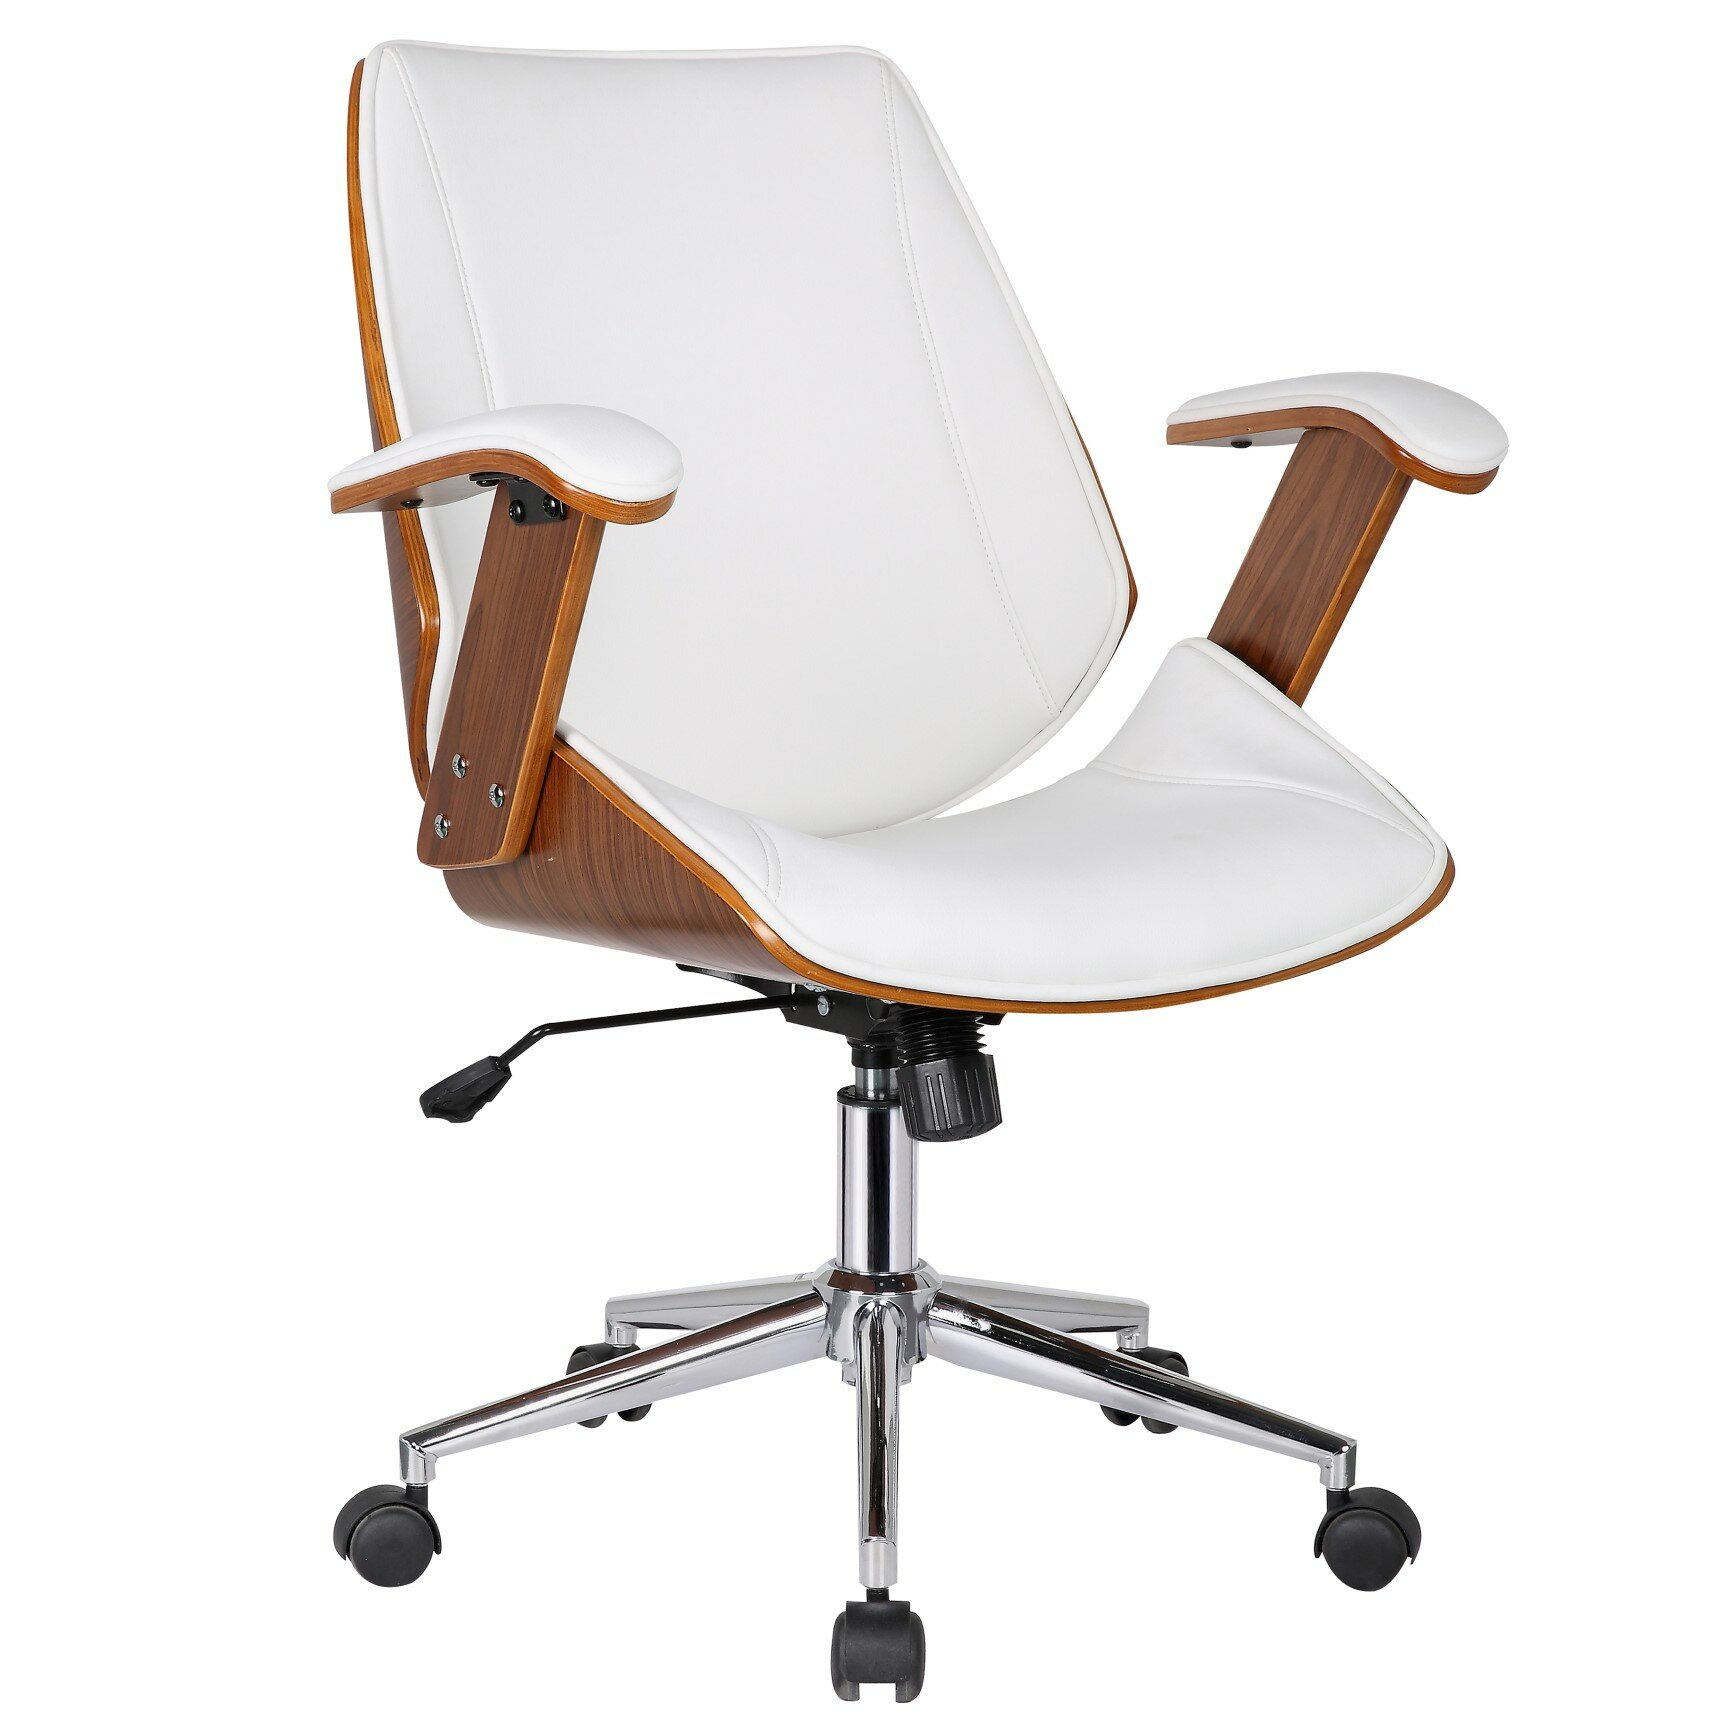 Midcentury Modern High-Back Office Chair